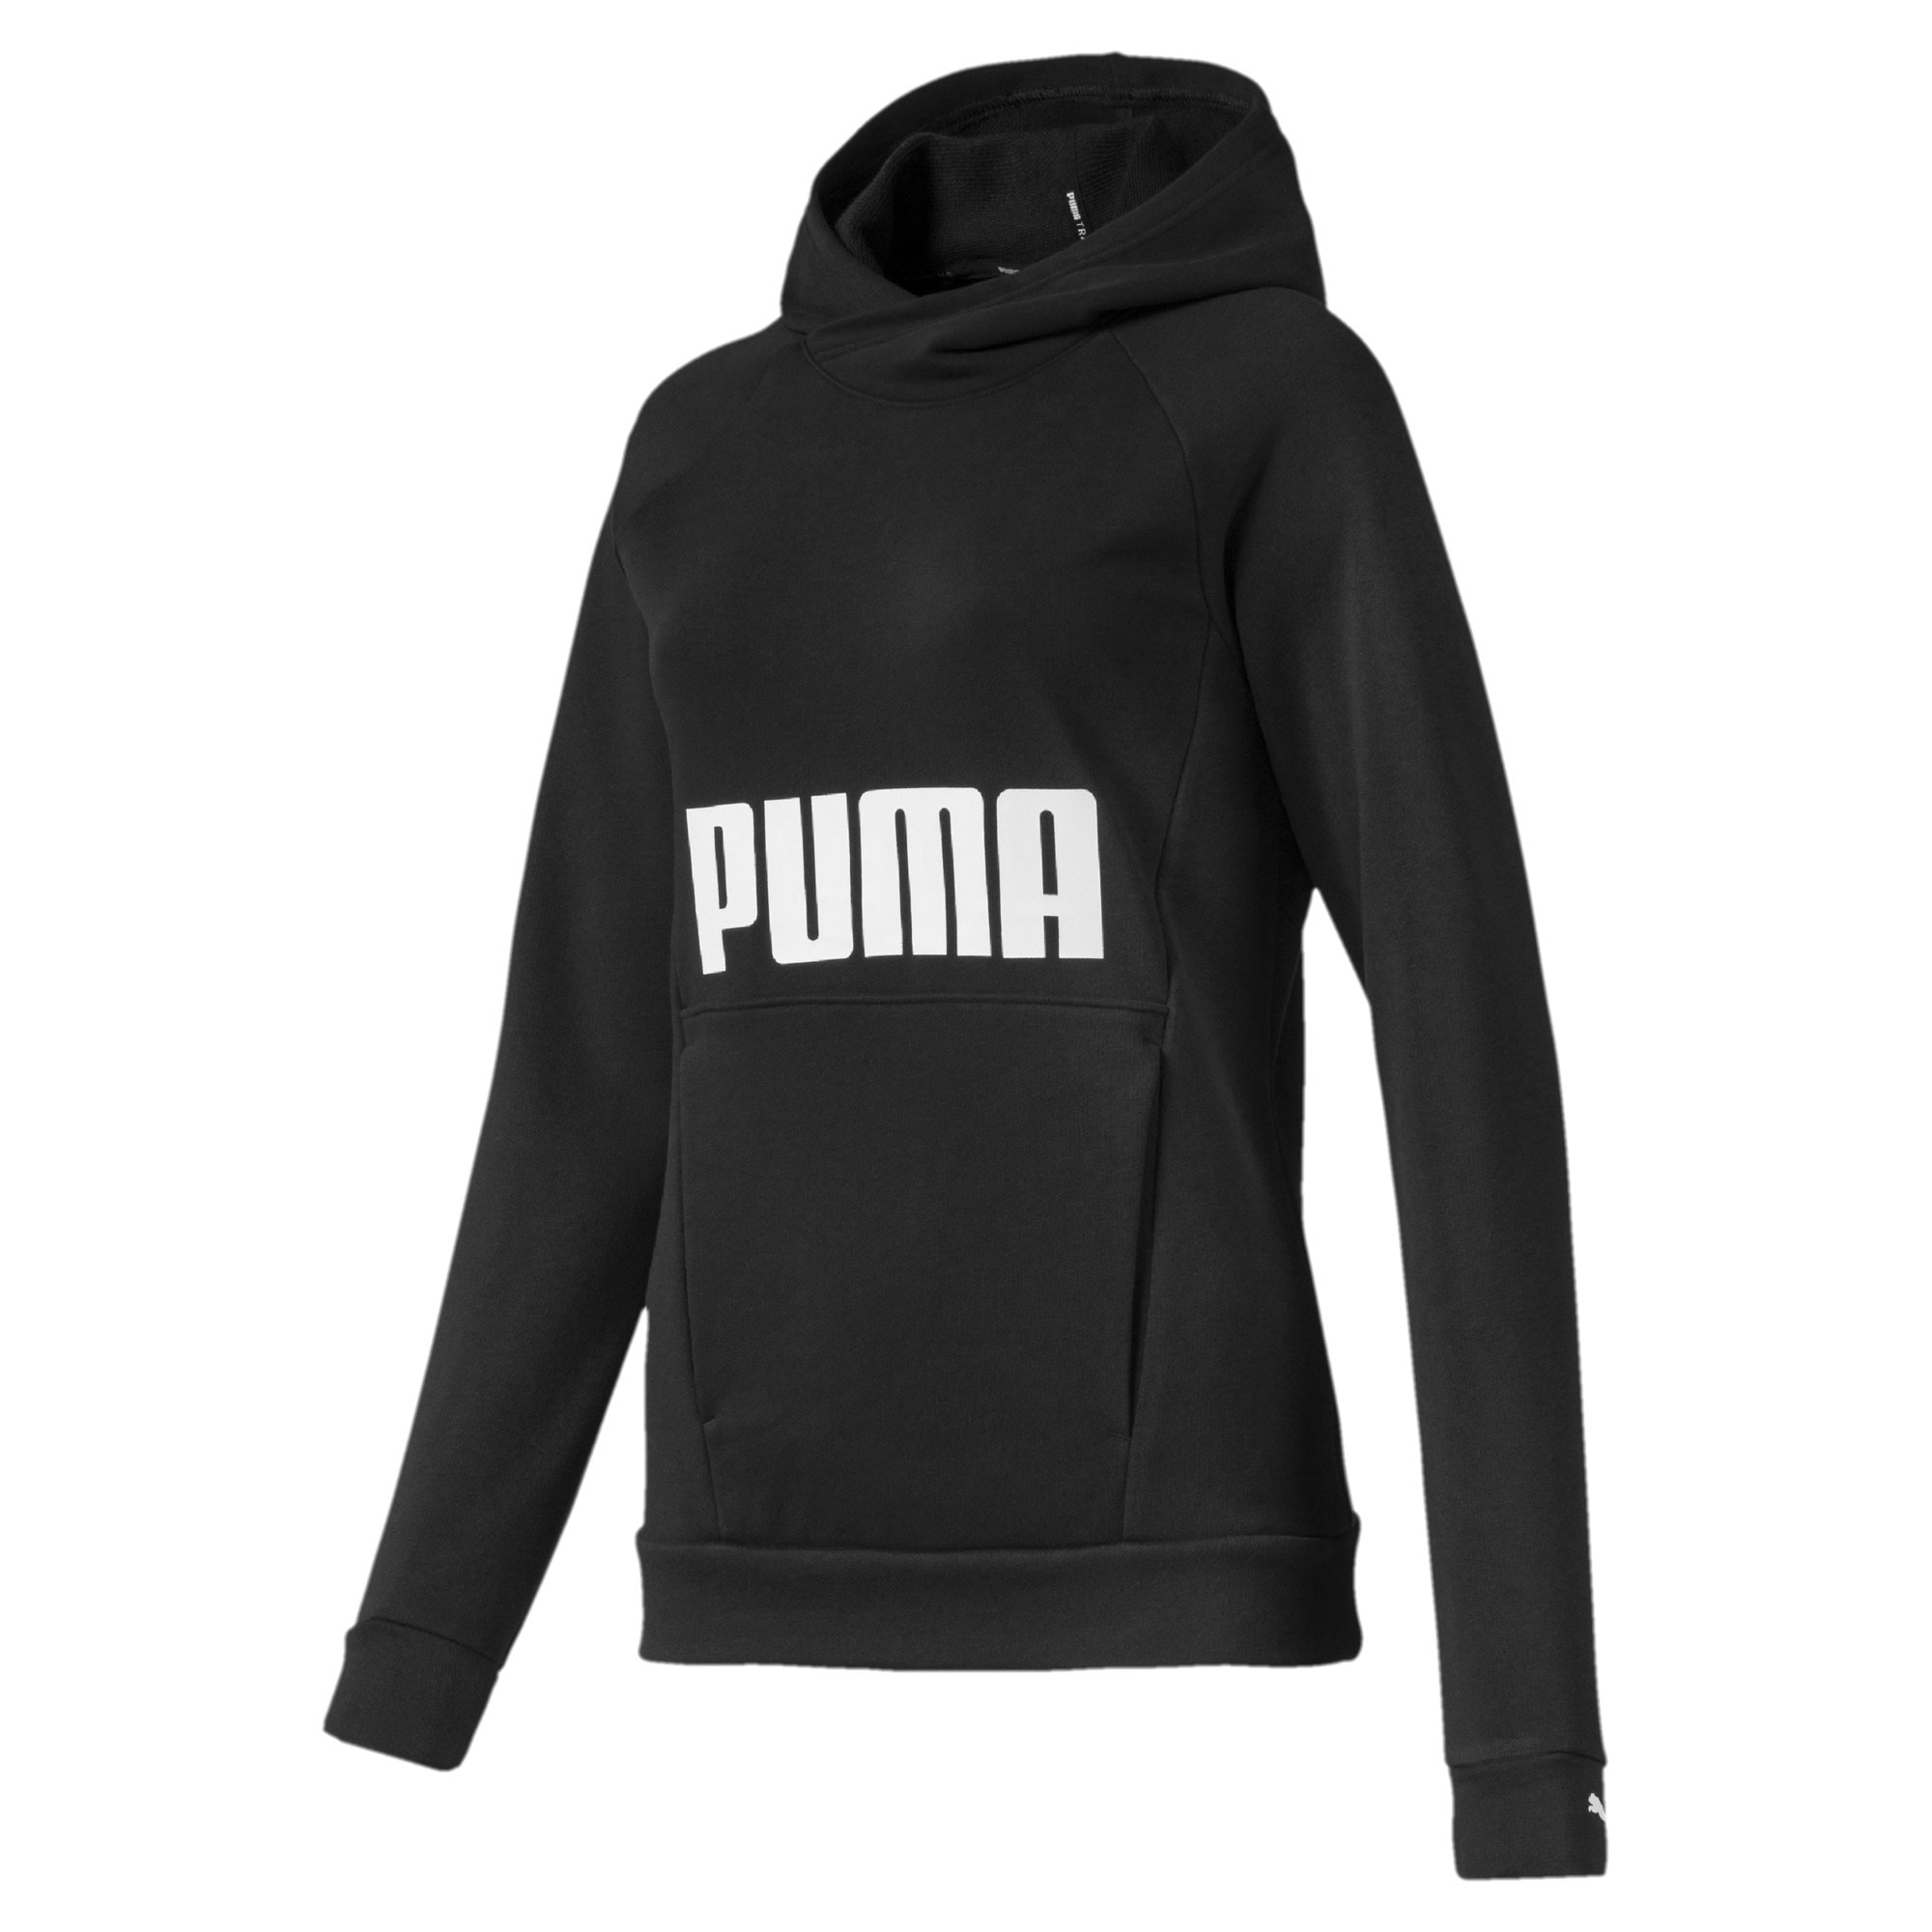 Thumbnail 4 of Fav Women's Training Hoodie, Puma Black, medium-IND